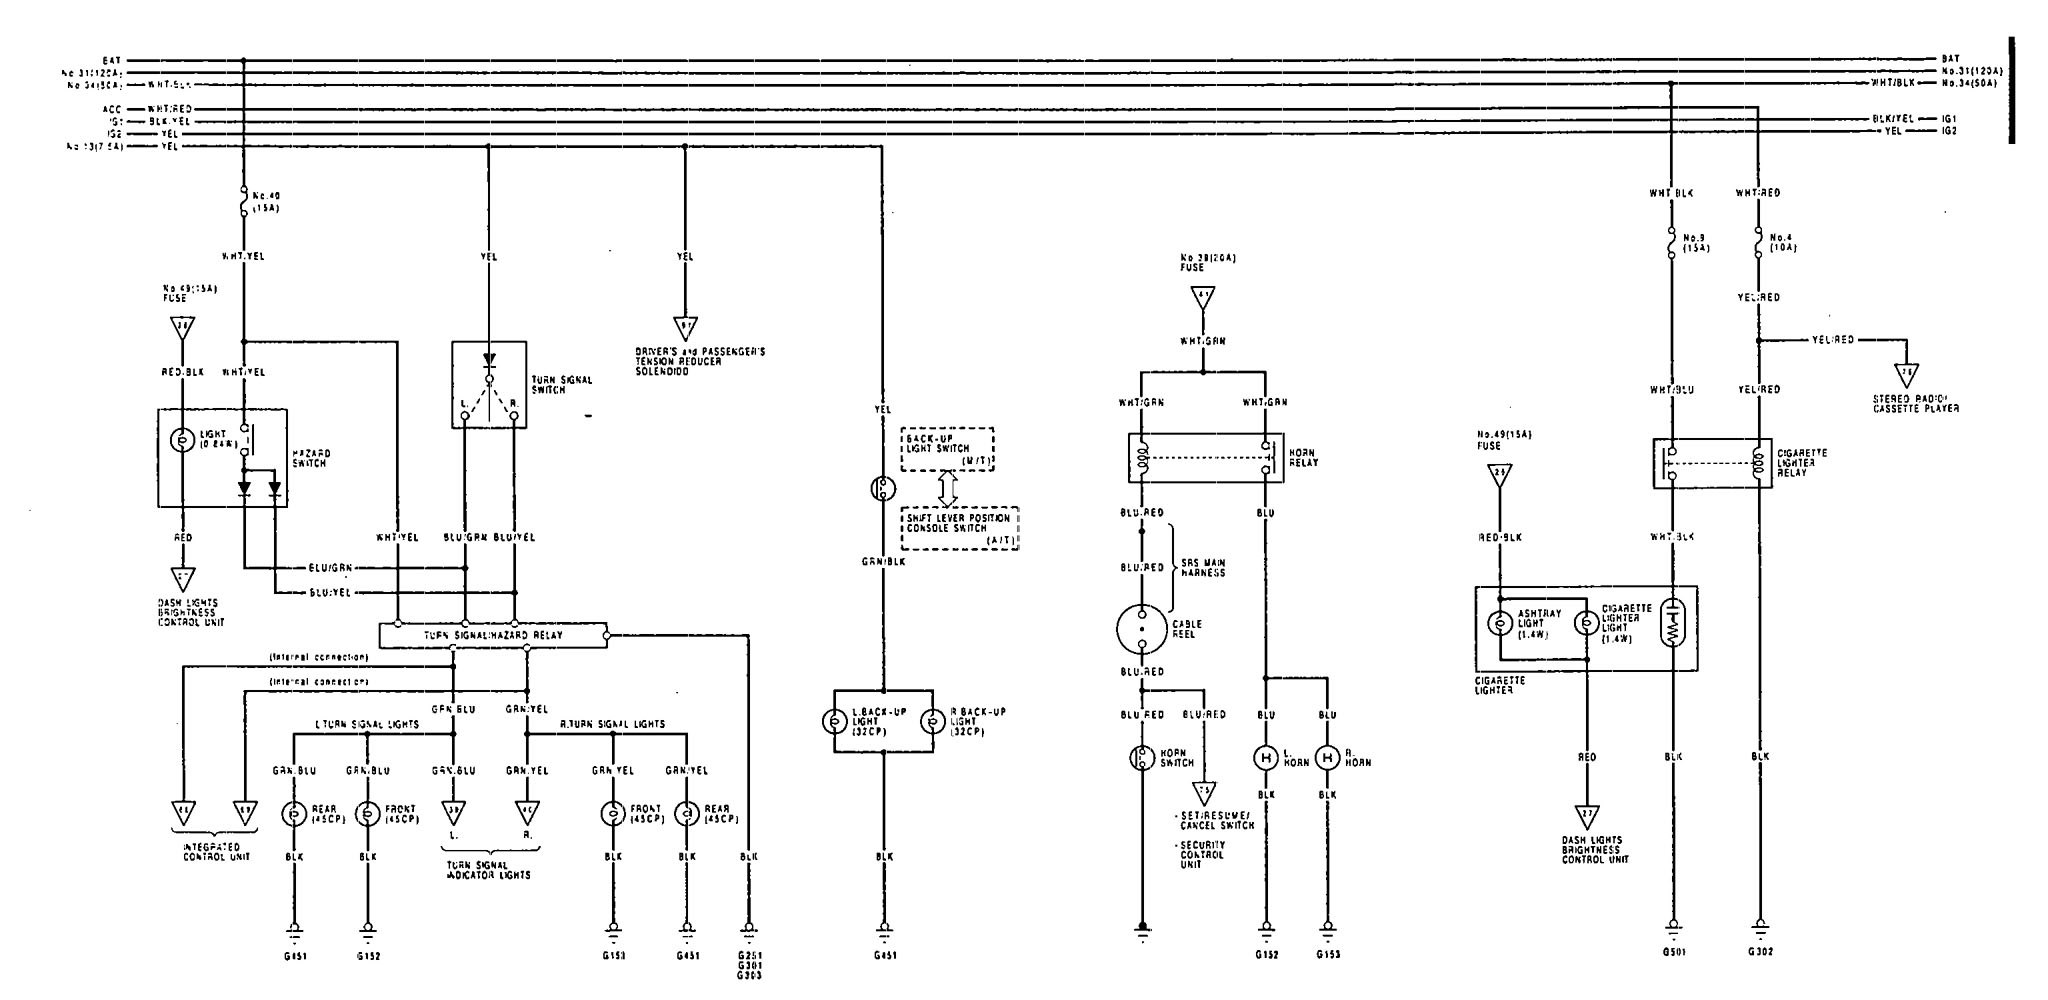 Diagram In Pictures Database 1989 Acura Legend Wiring Diagram Just Download Or Read Wiring Diagram Online Casalamm Edu Mx